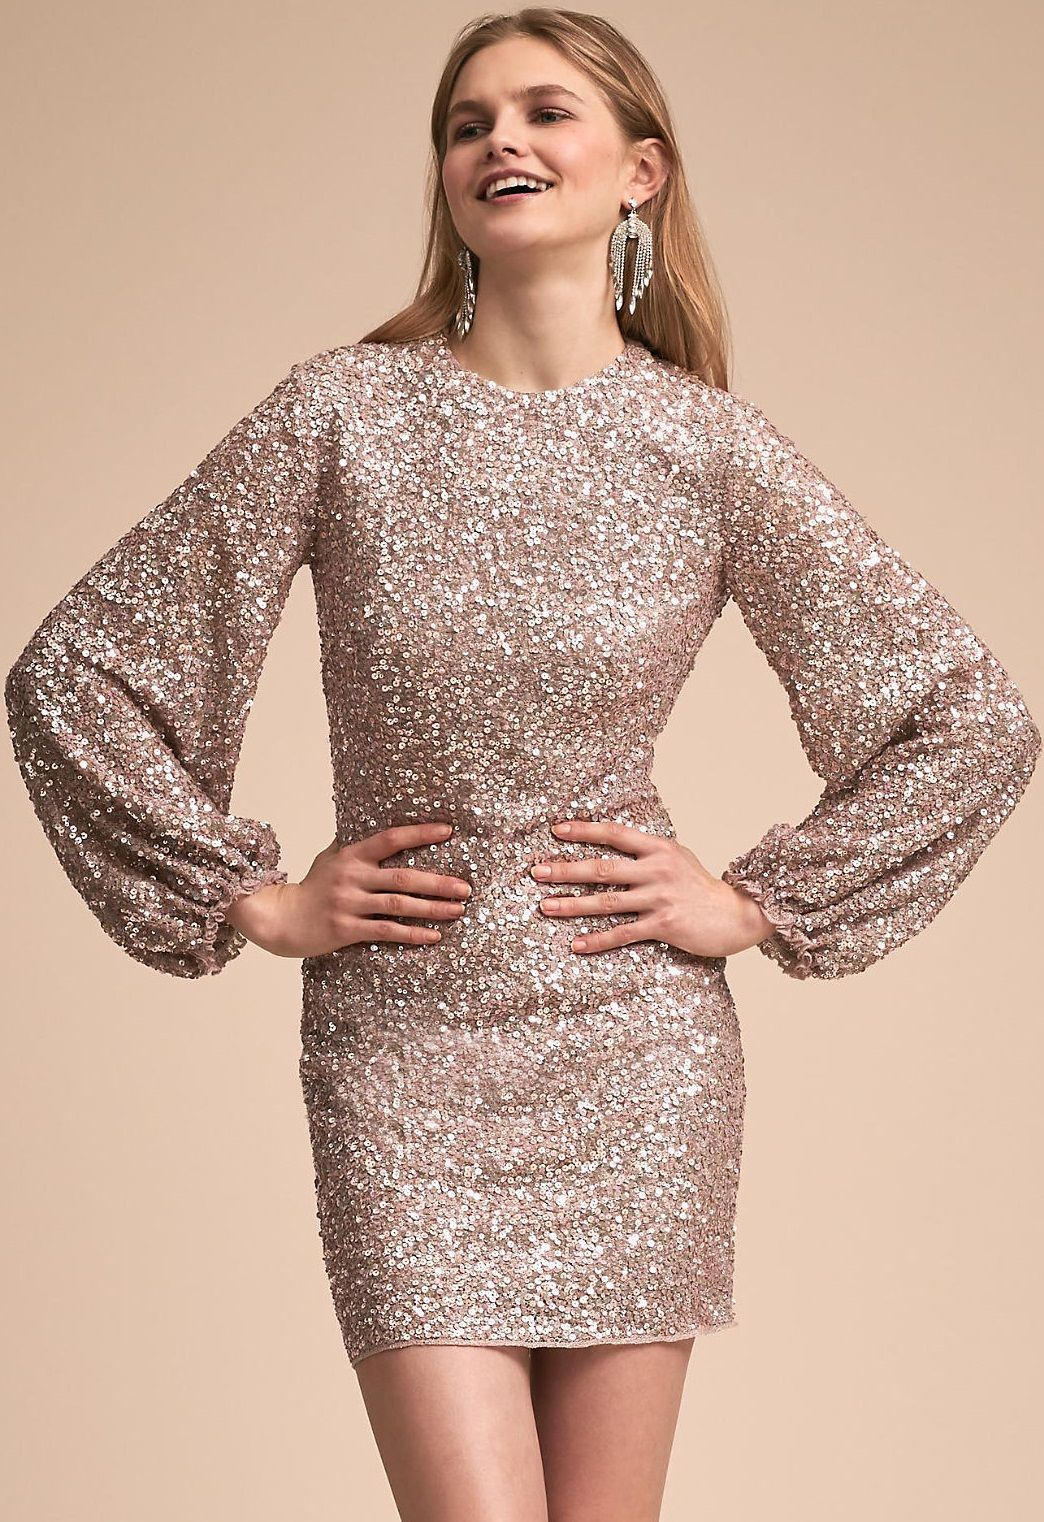 Long sleeves sequins homecoming dressround neck prom gown for teen